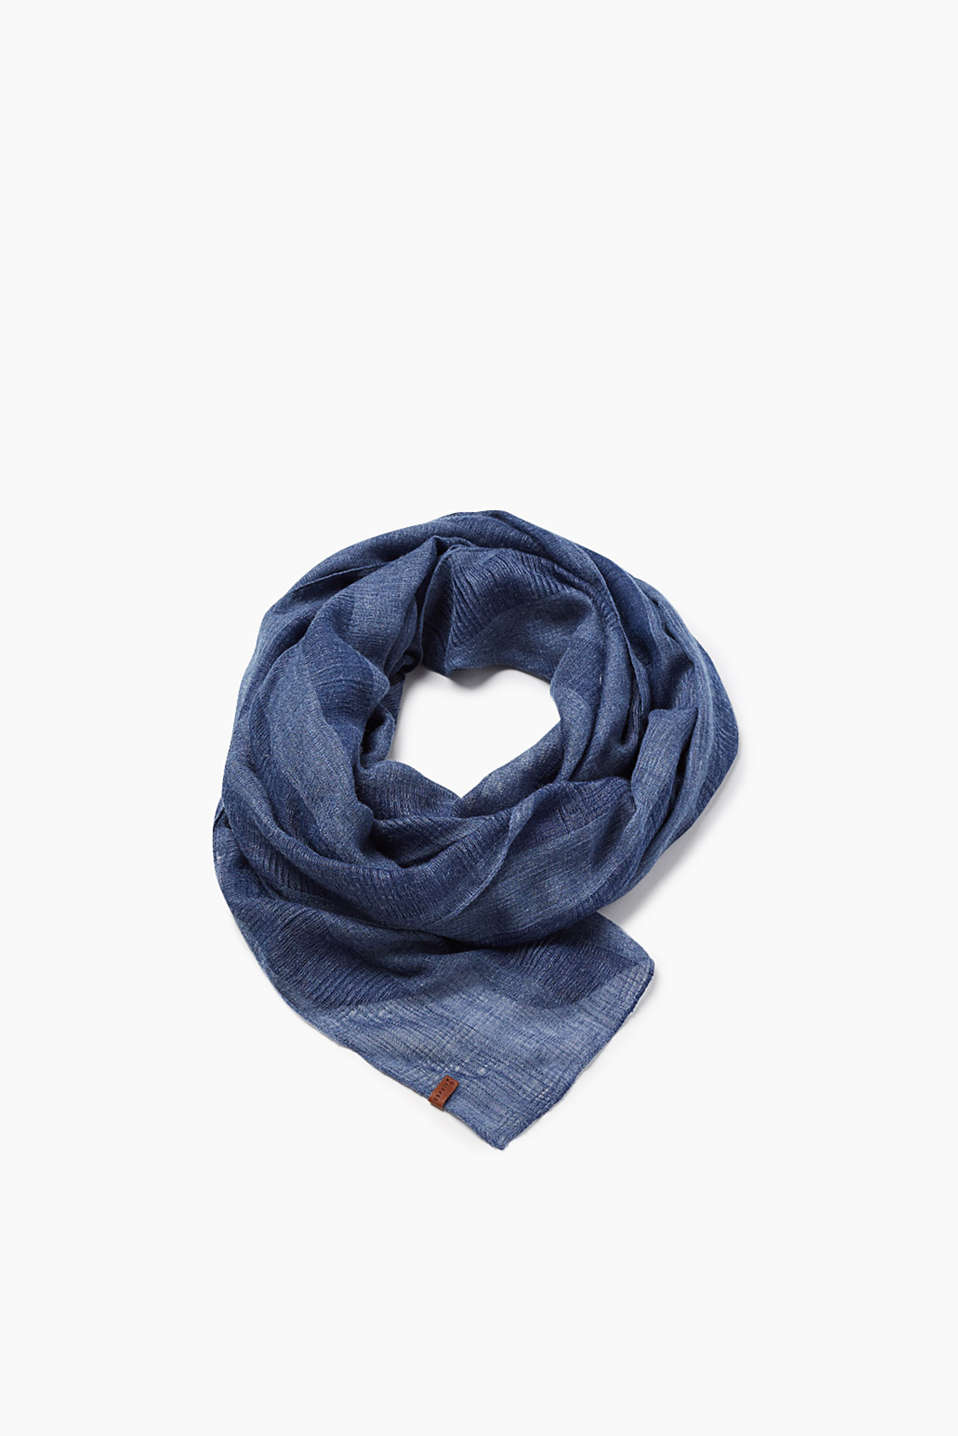 In lightweight blended fabric: tone-in-tone scarf